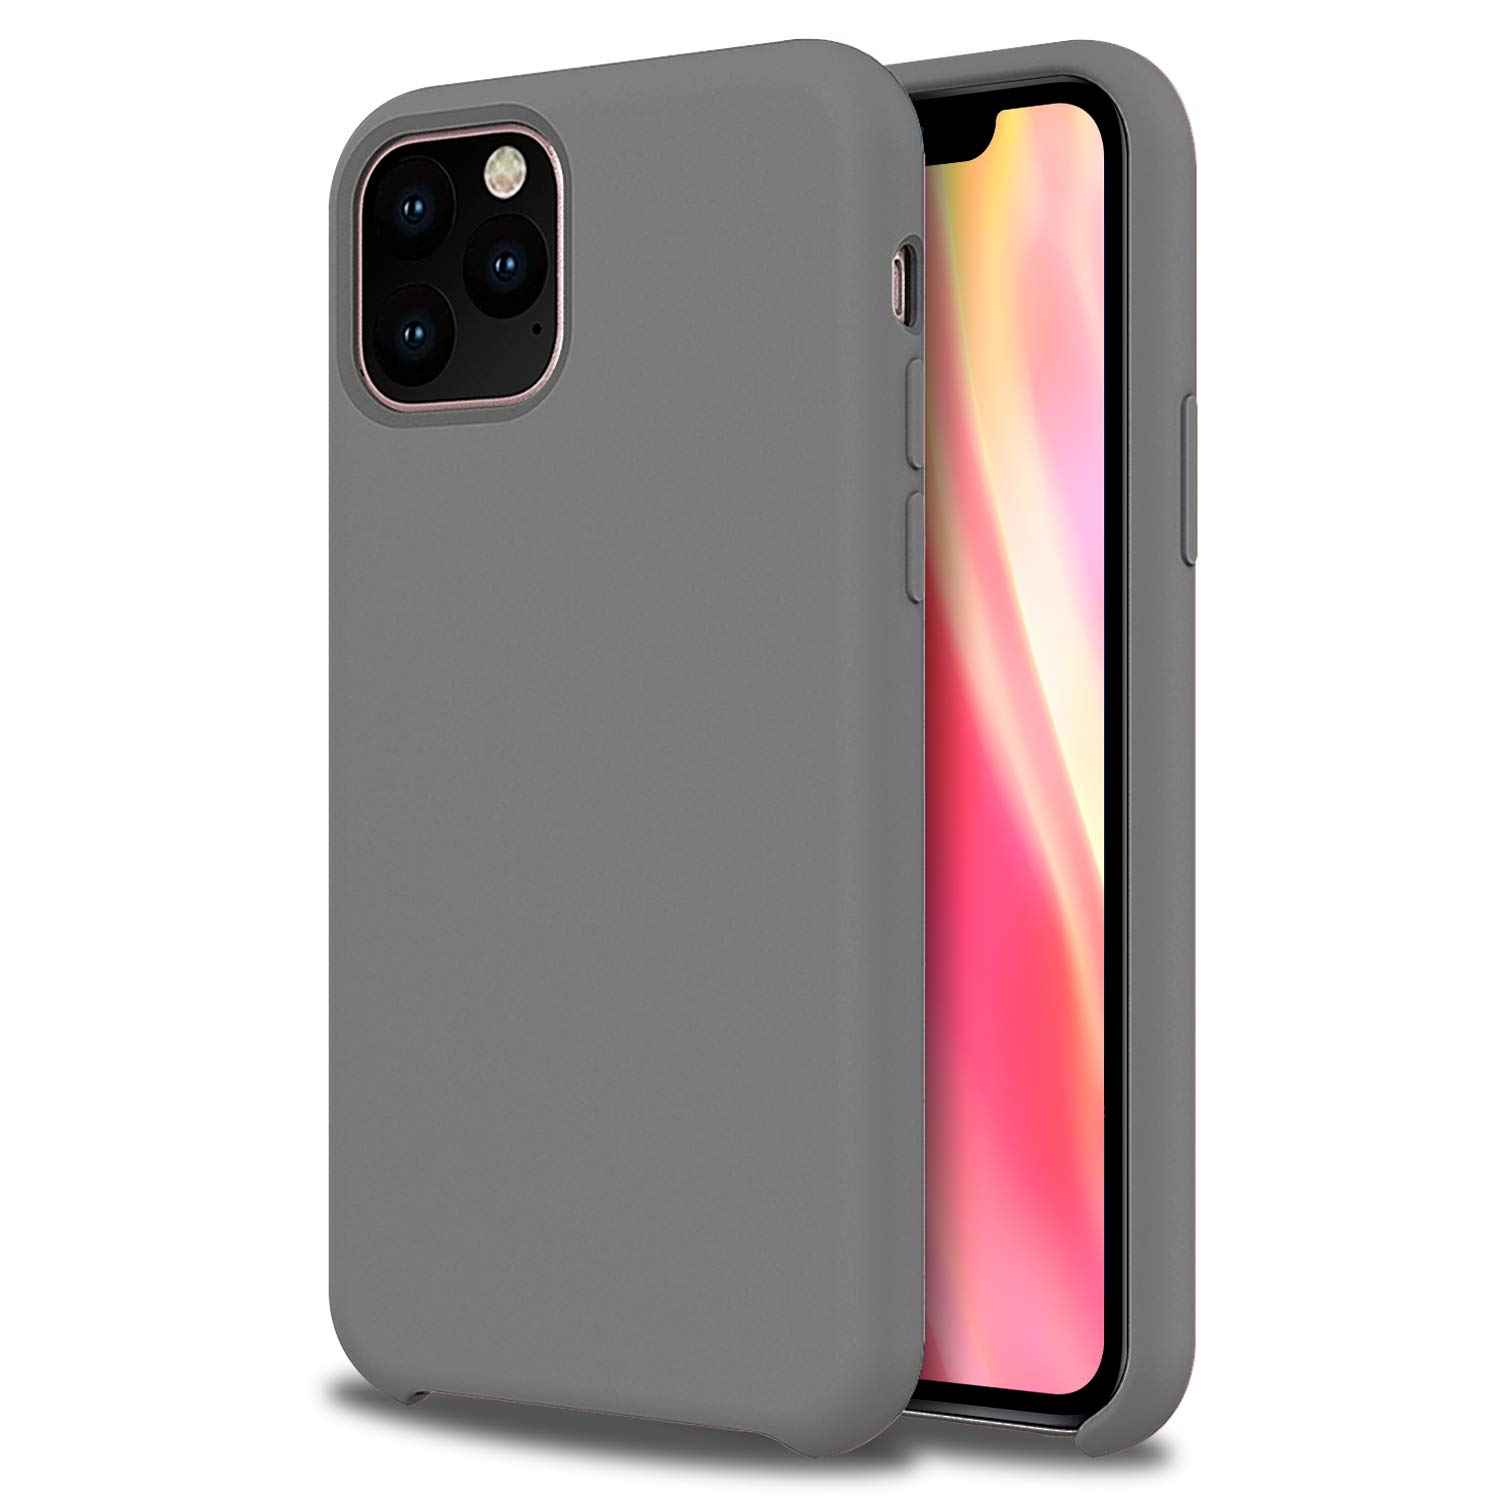 Olixar for iPhone 11 Pro Max Silicone Case Grey - Soft Touch - Smooth Thin Protective Cover - Wireless Charging Compatible - Grey